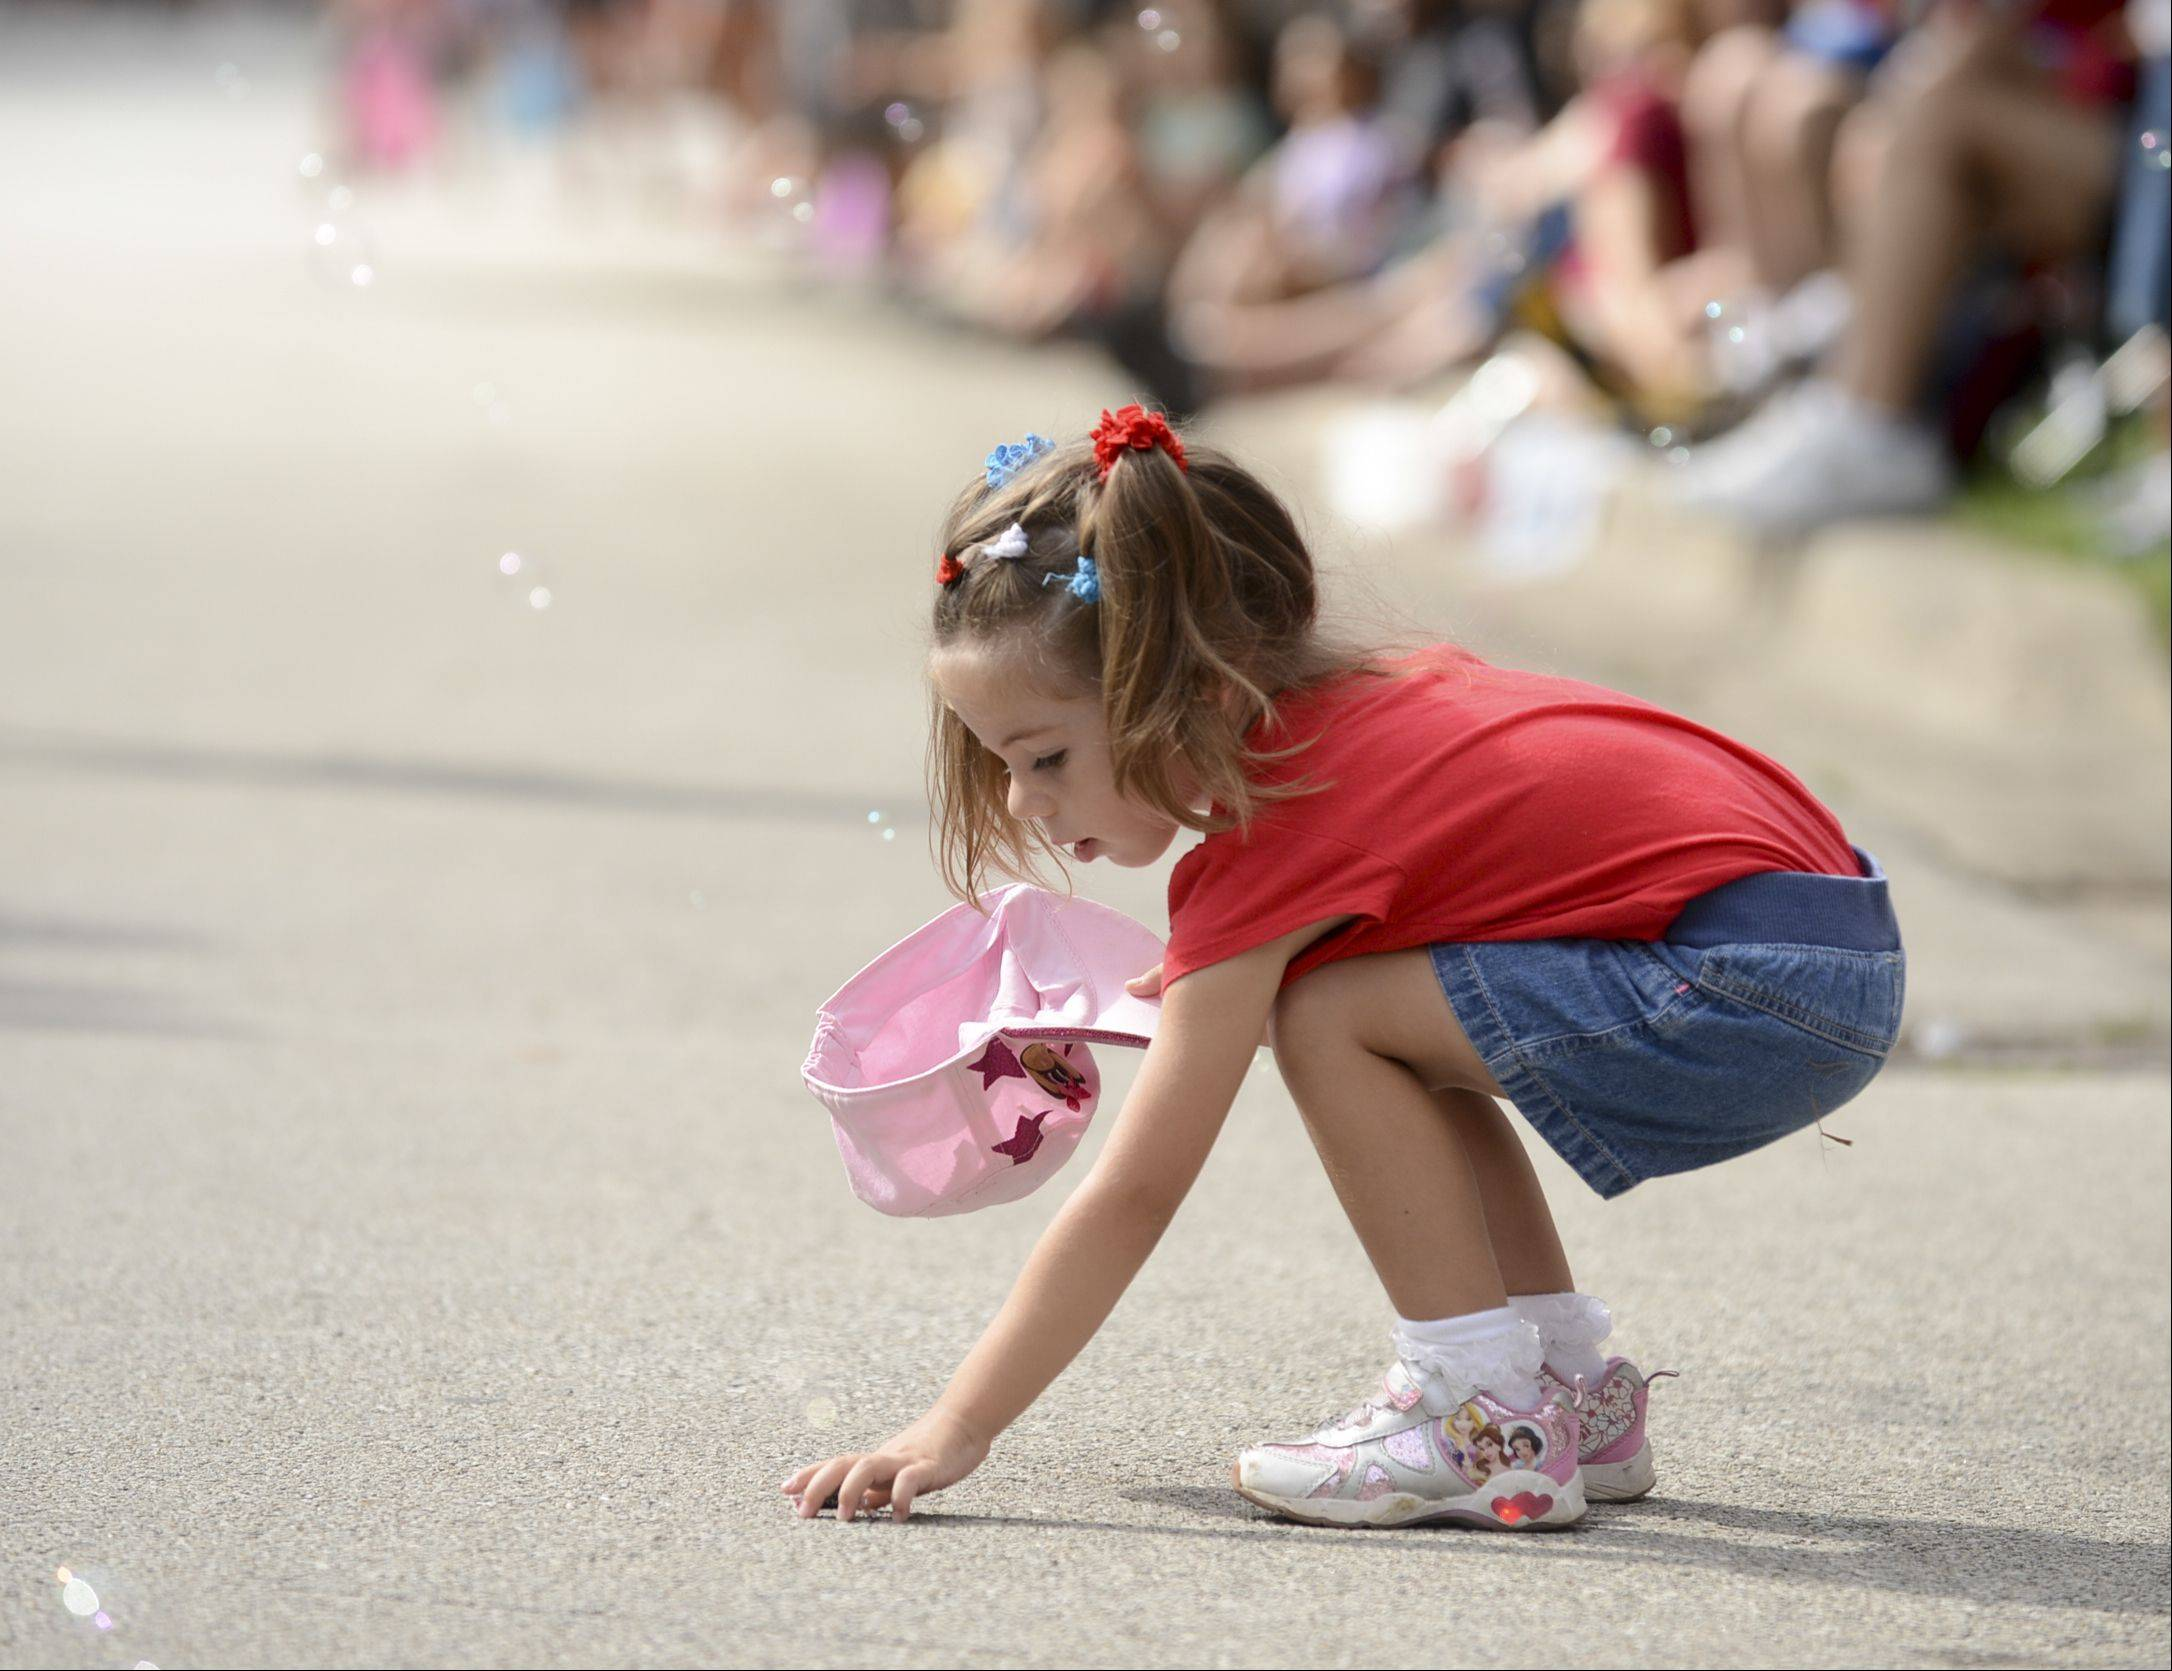 Cherish Kramer, 3, of Glen Ellyn scoops up candy during Naperville's Labor Day parade.